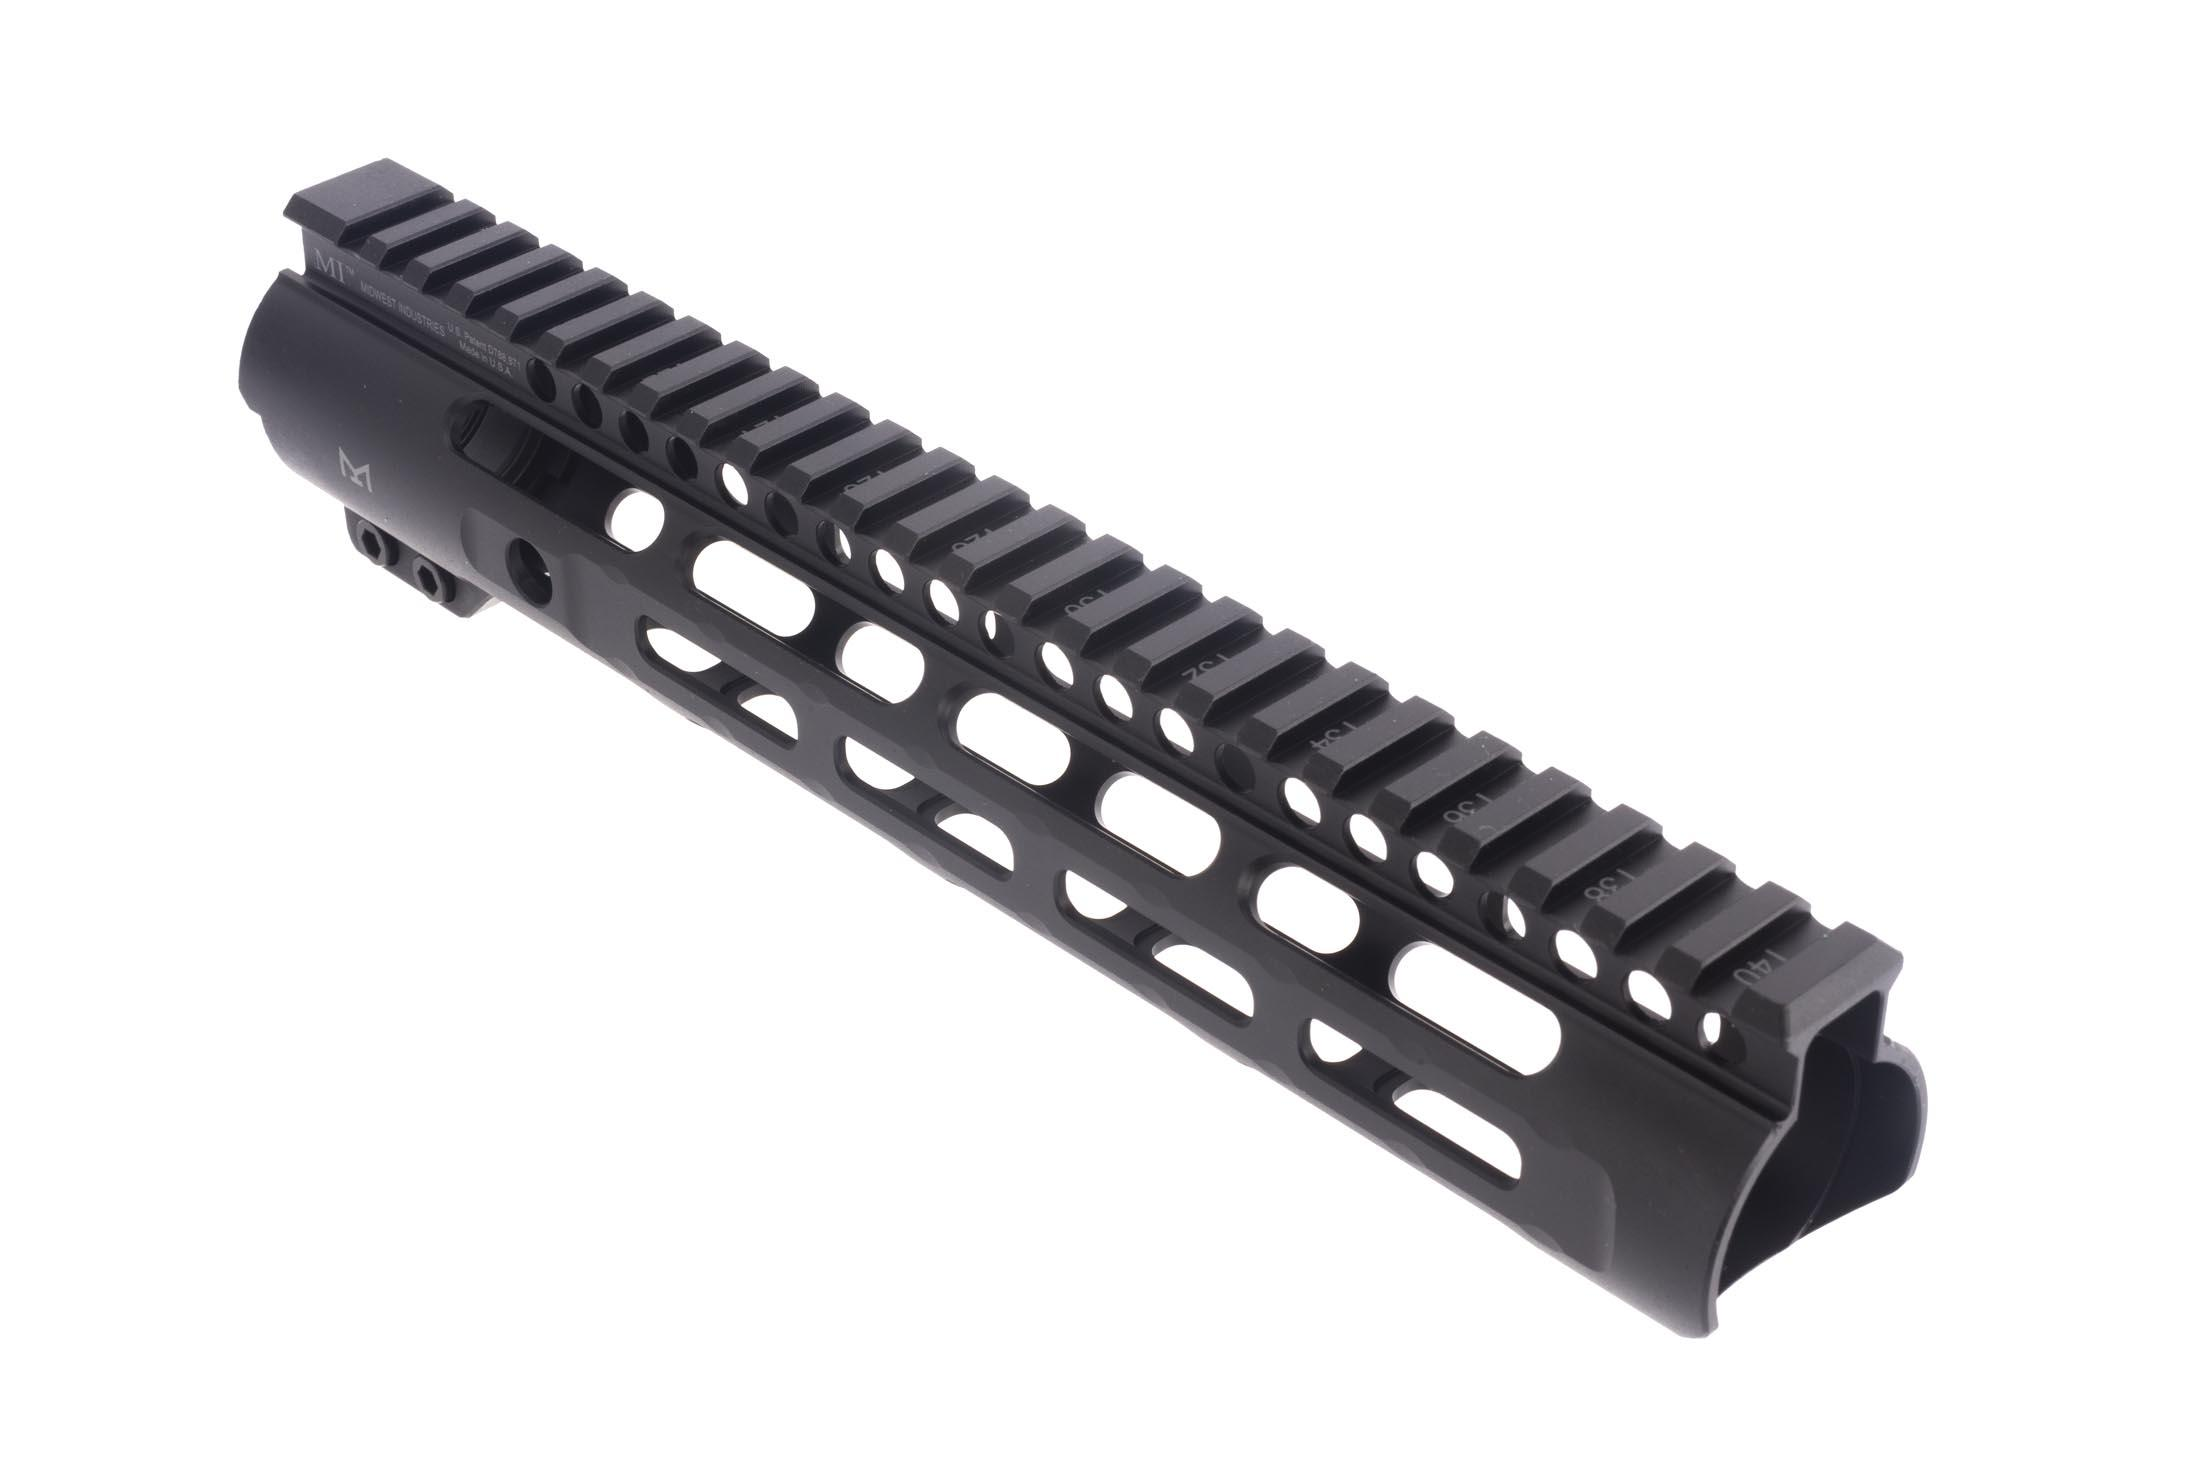 Midwest Industries 10.25in Slim Line free float AR-15 handguard features a tough anodized finish and accepts M-LOK accessories